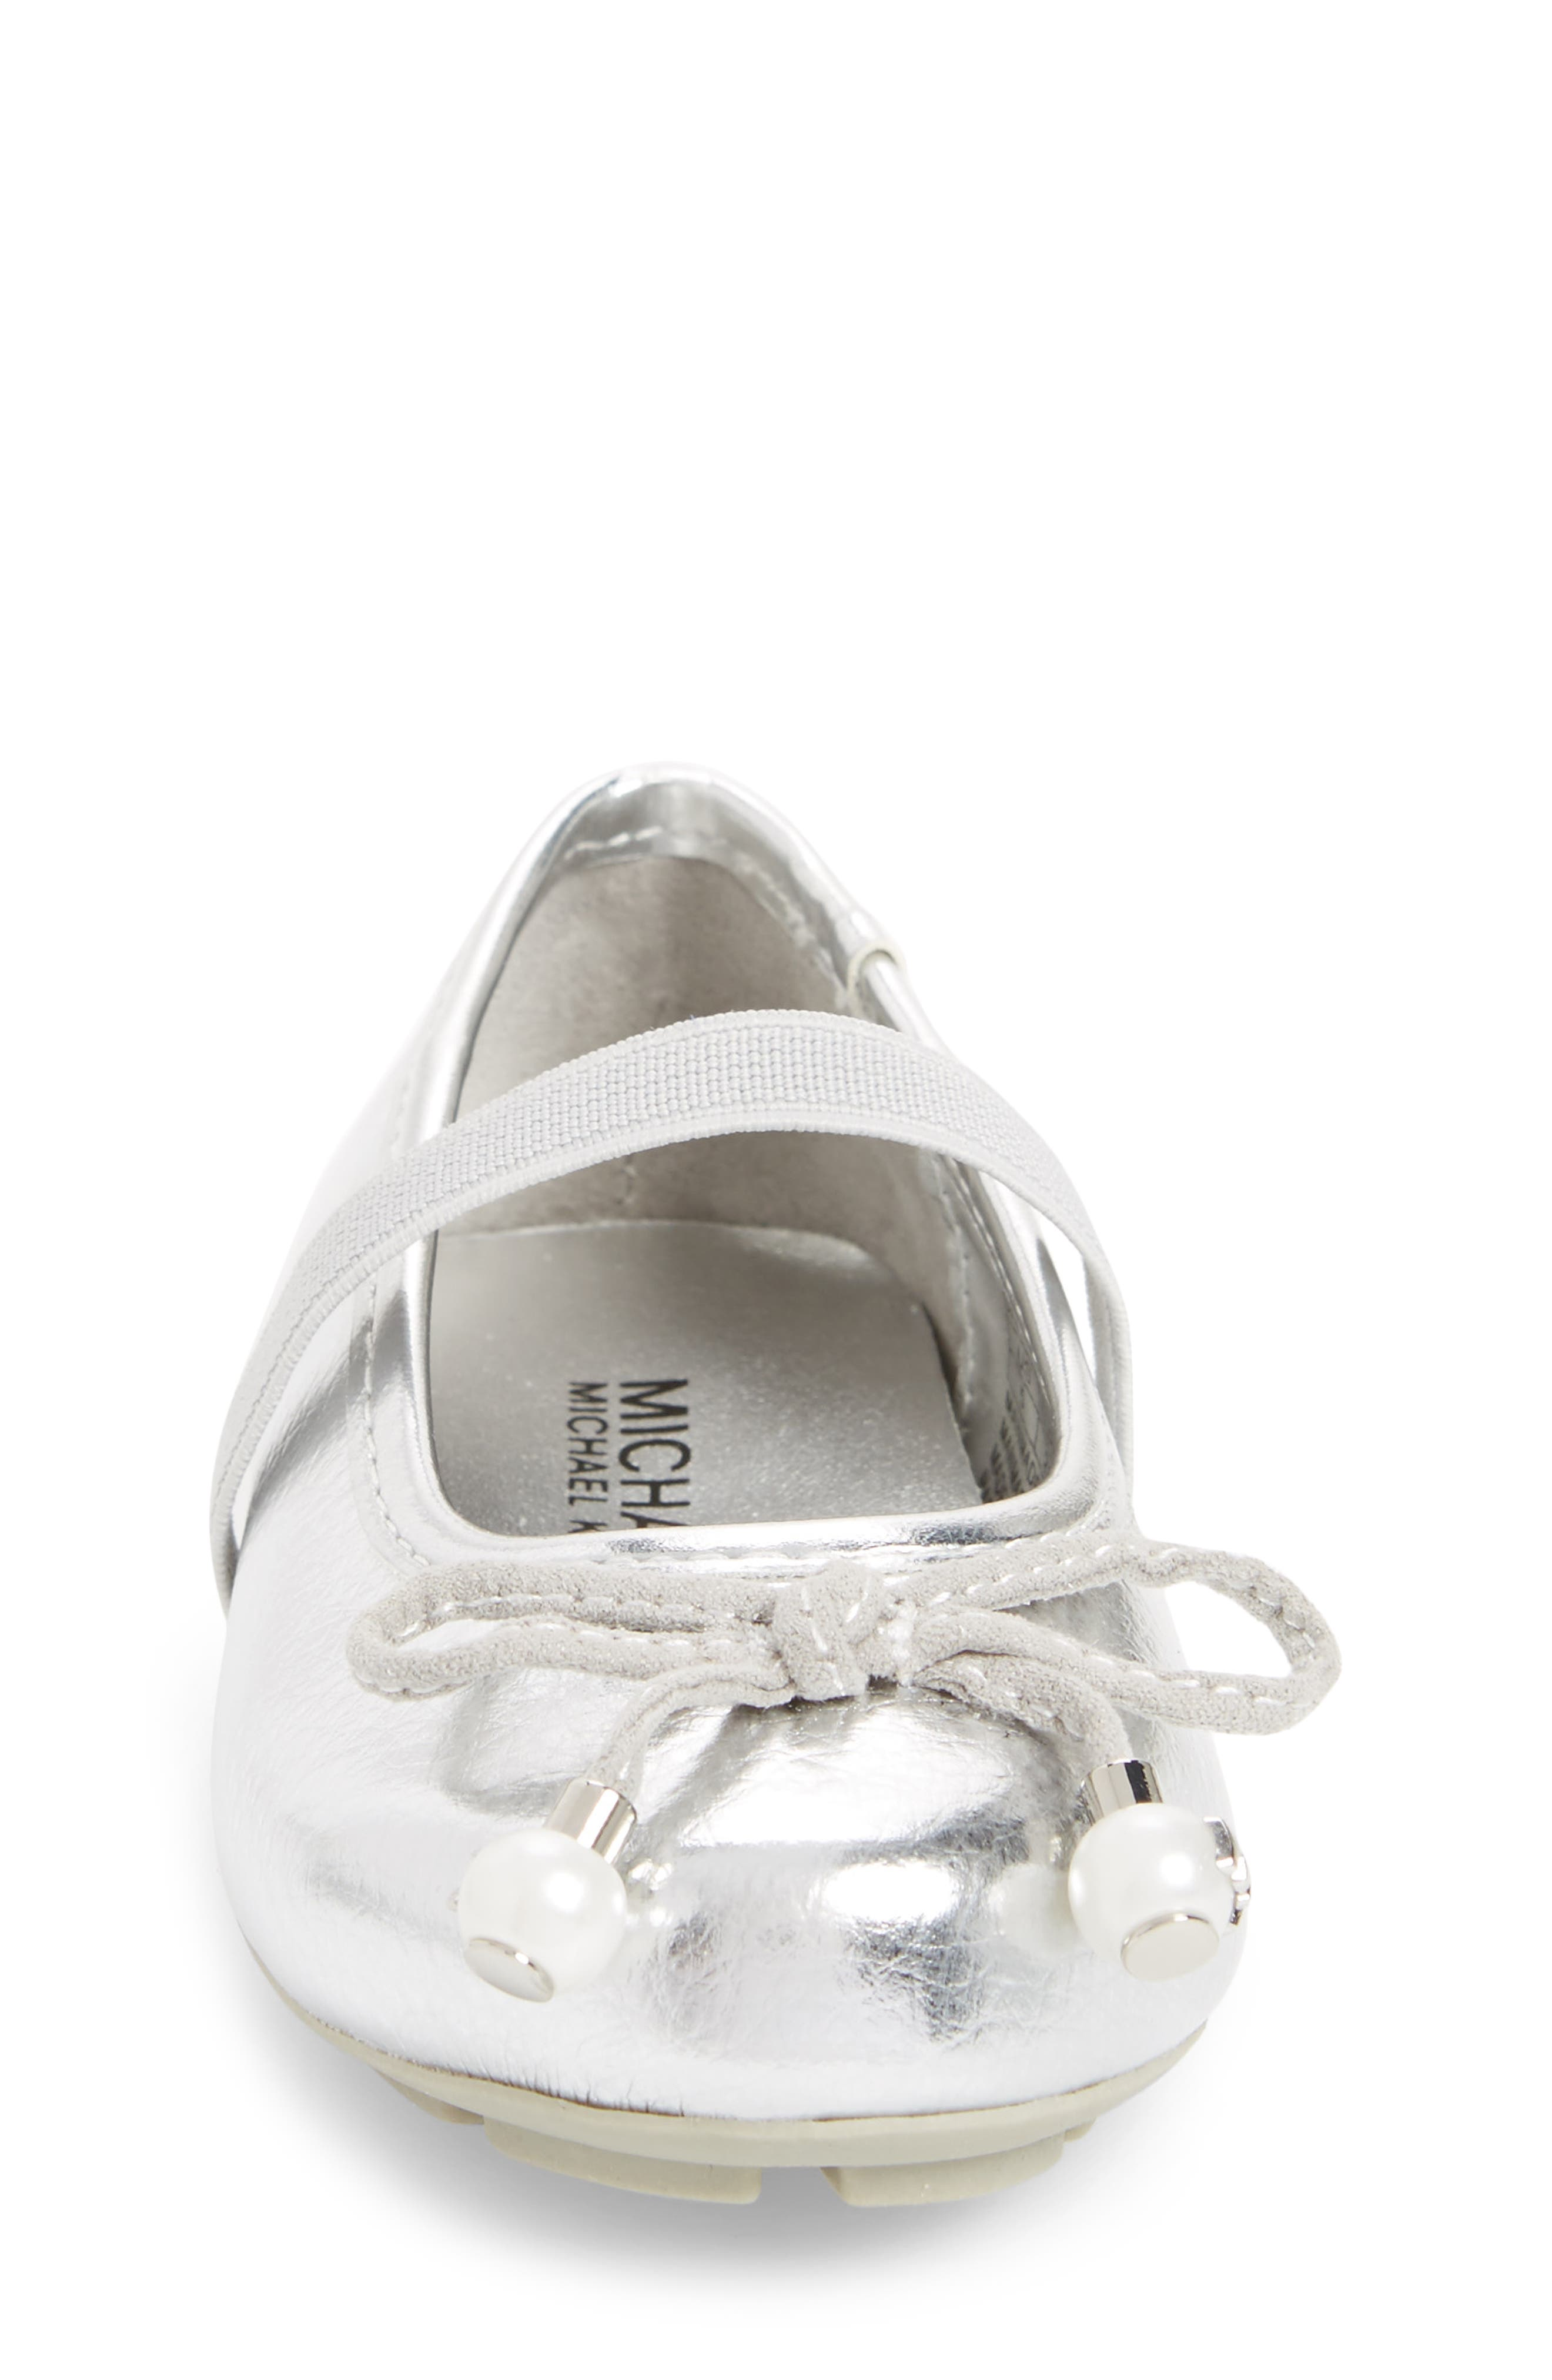 Rover Ting Ballet Flat,                             Alternate thumbnail 4, color,                             Silver